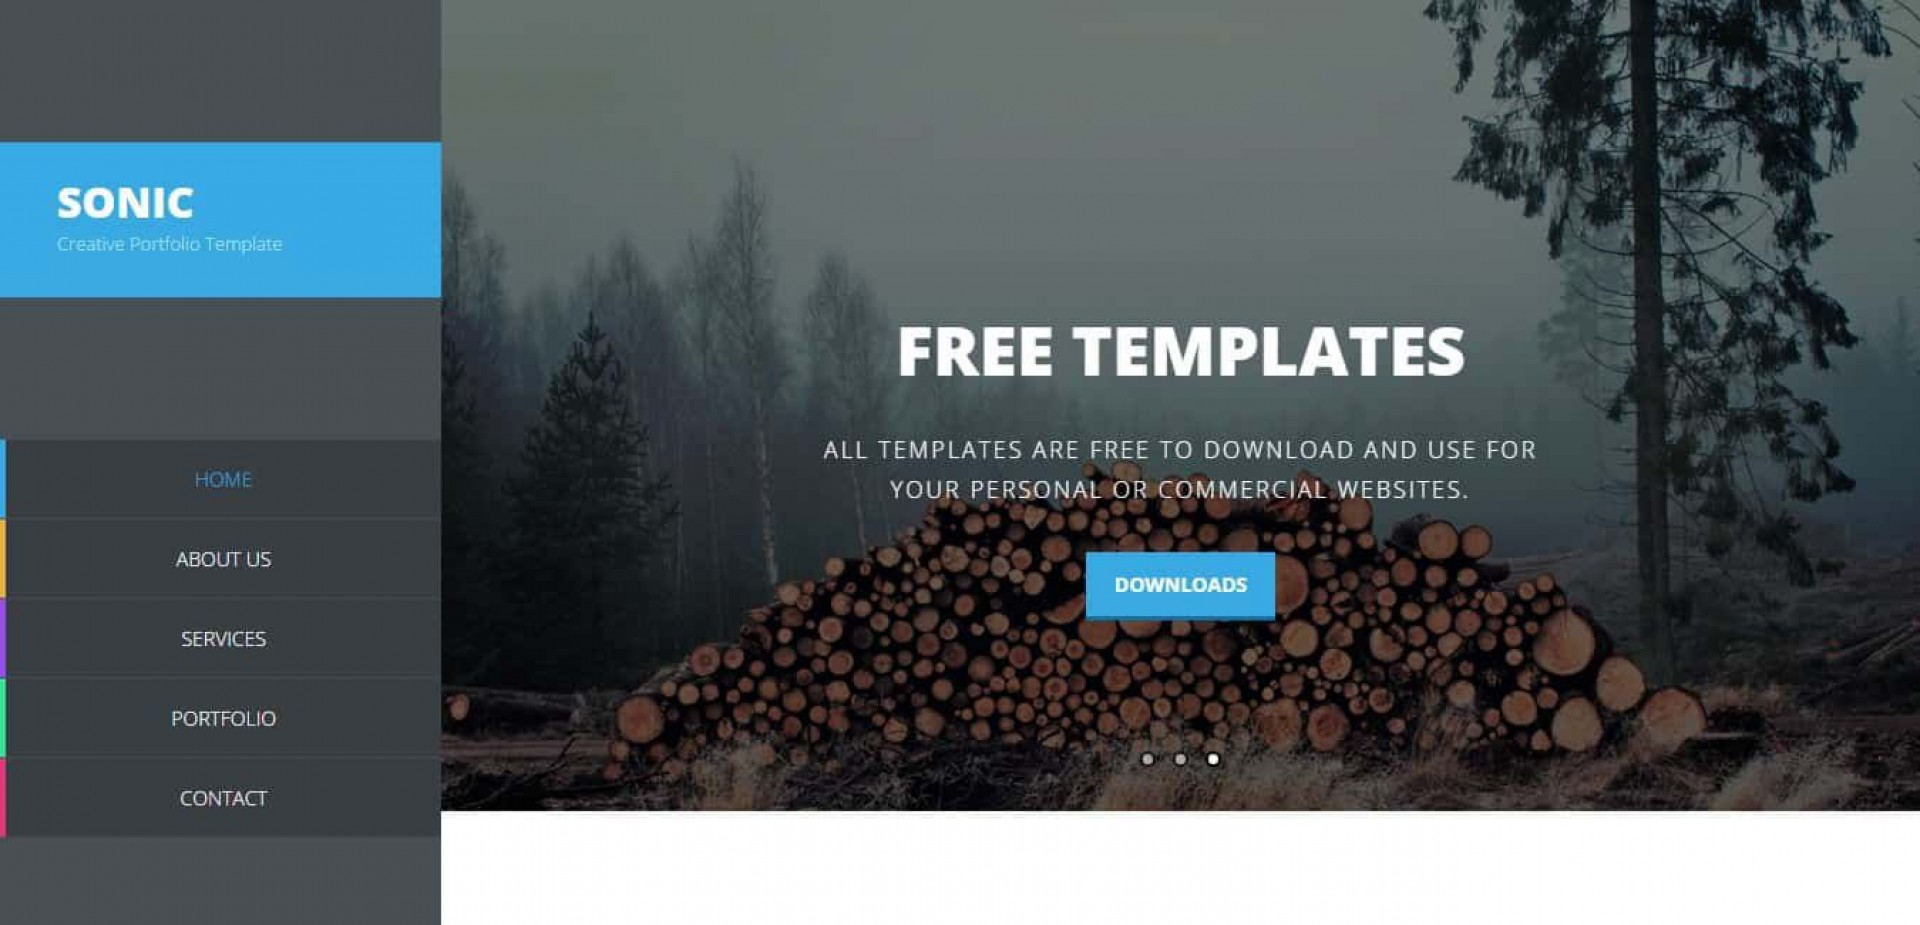 005 Archaicawful Free Website Template Dreamweaver High Definition  Ecommerce Download Construction Html1920